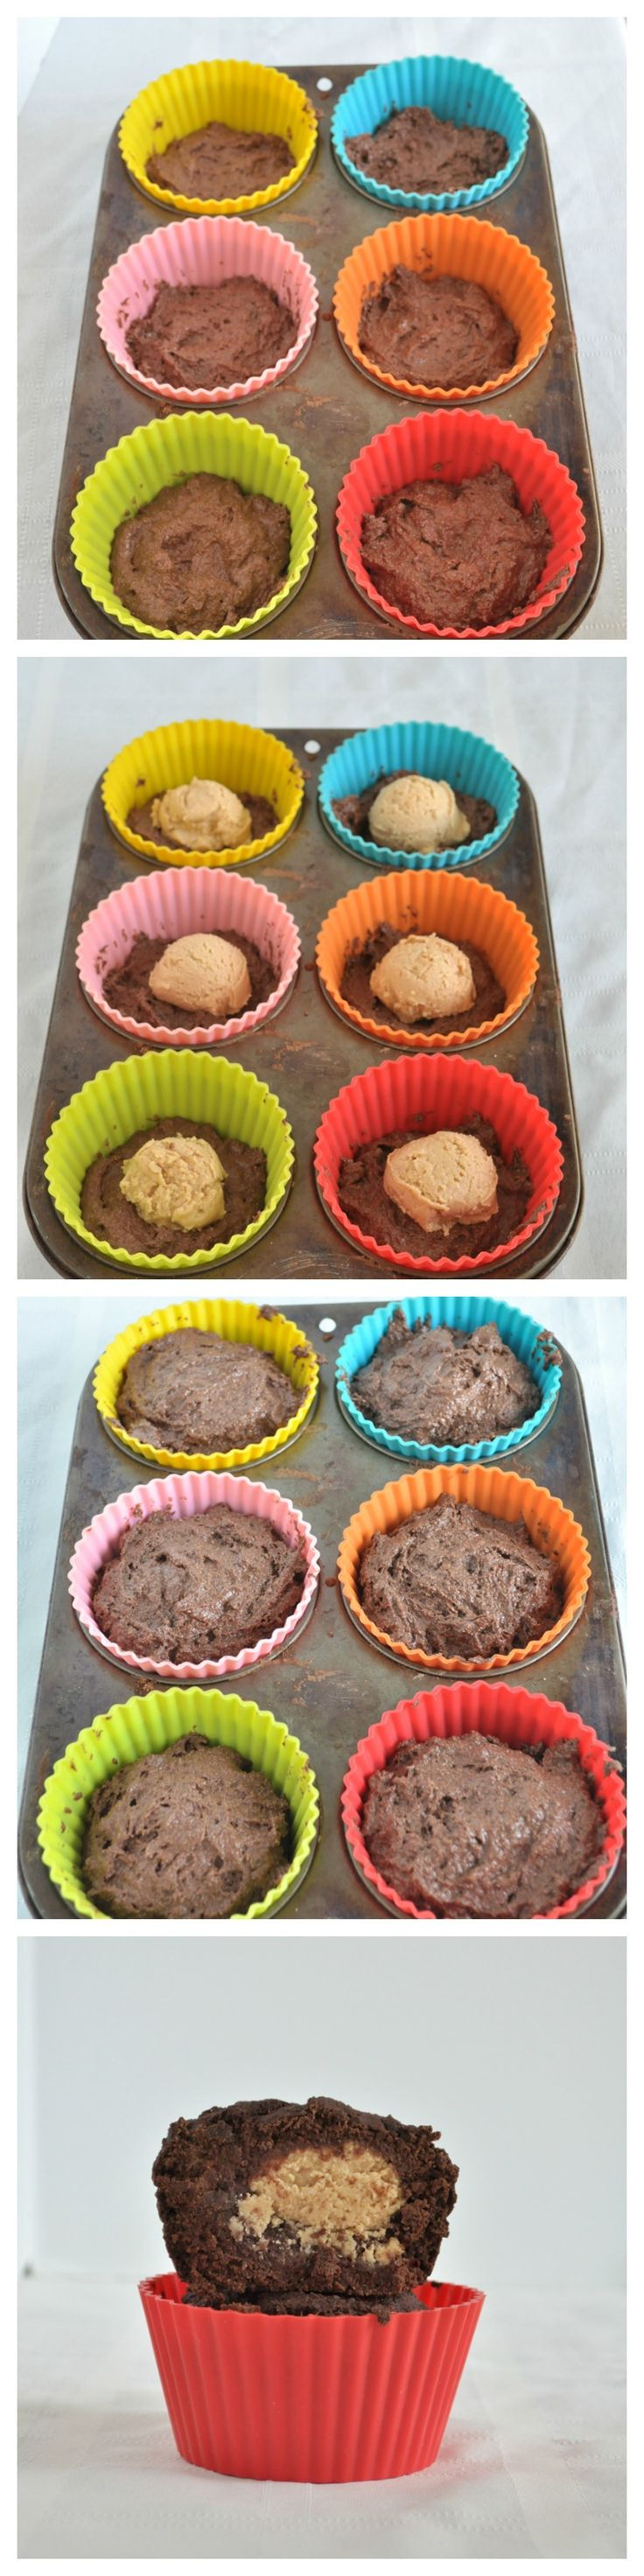 Peanut Butter Cup Muffins. Start to finish in less than 25 minutes. A healthy muffin recipe that tastes like dessert. Vegan and gluten free.